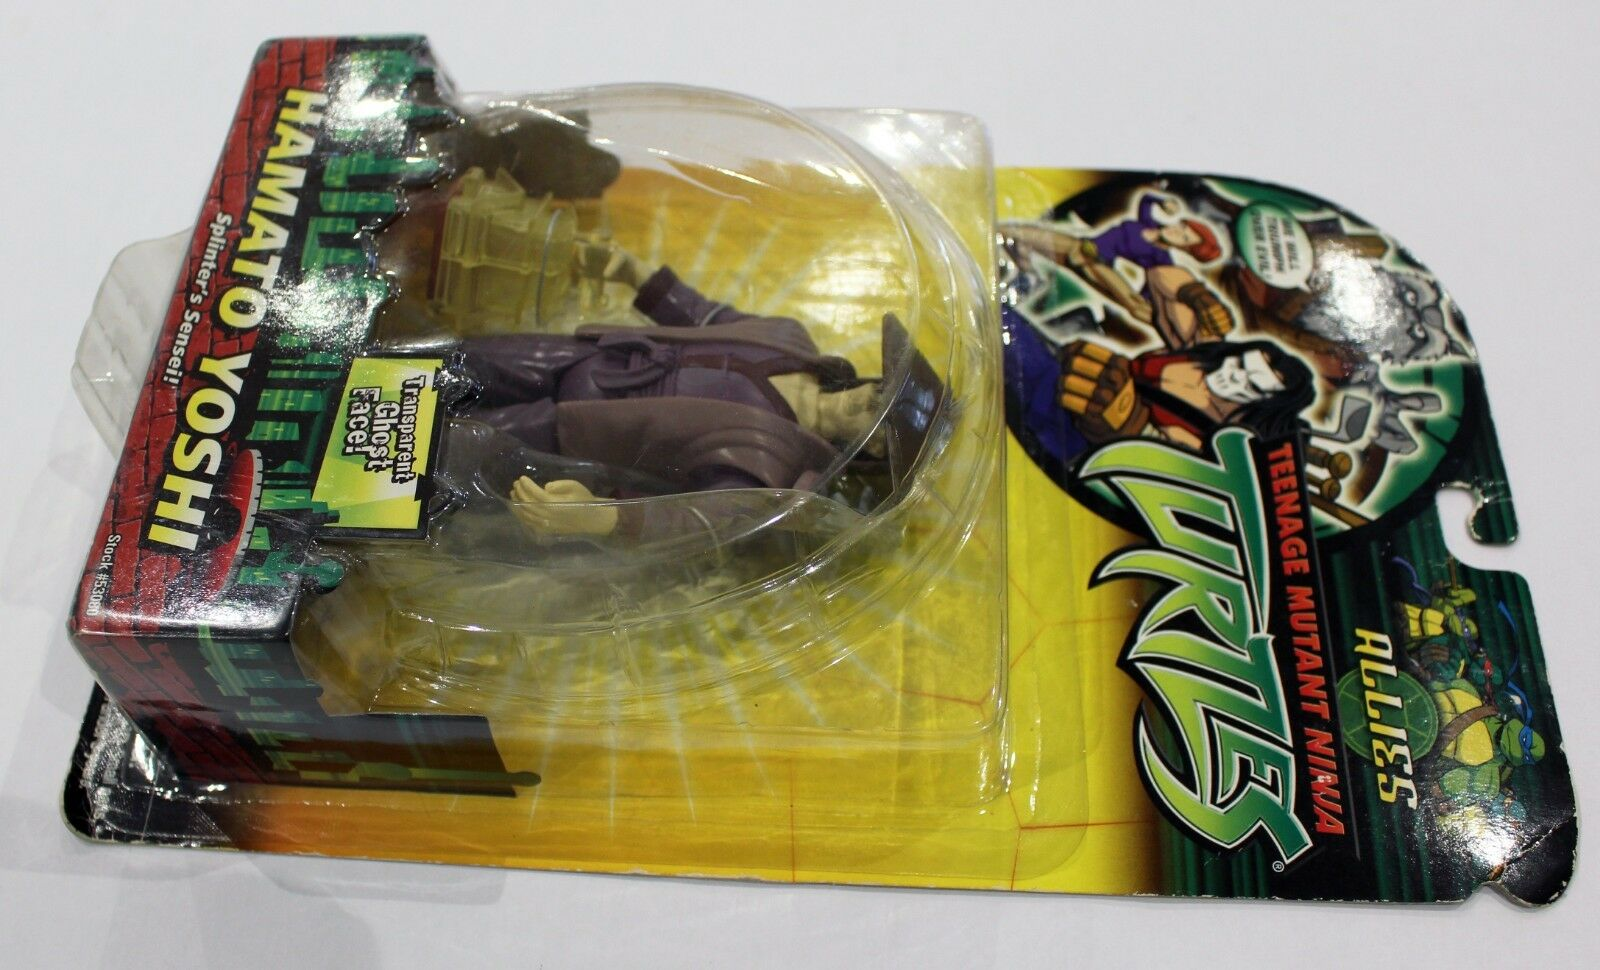 Playmates TMNT TMNT TMNT Ninja Turtles 2005 Hamato Yoshi  - New & Sealed 5dfd10